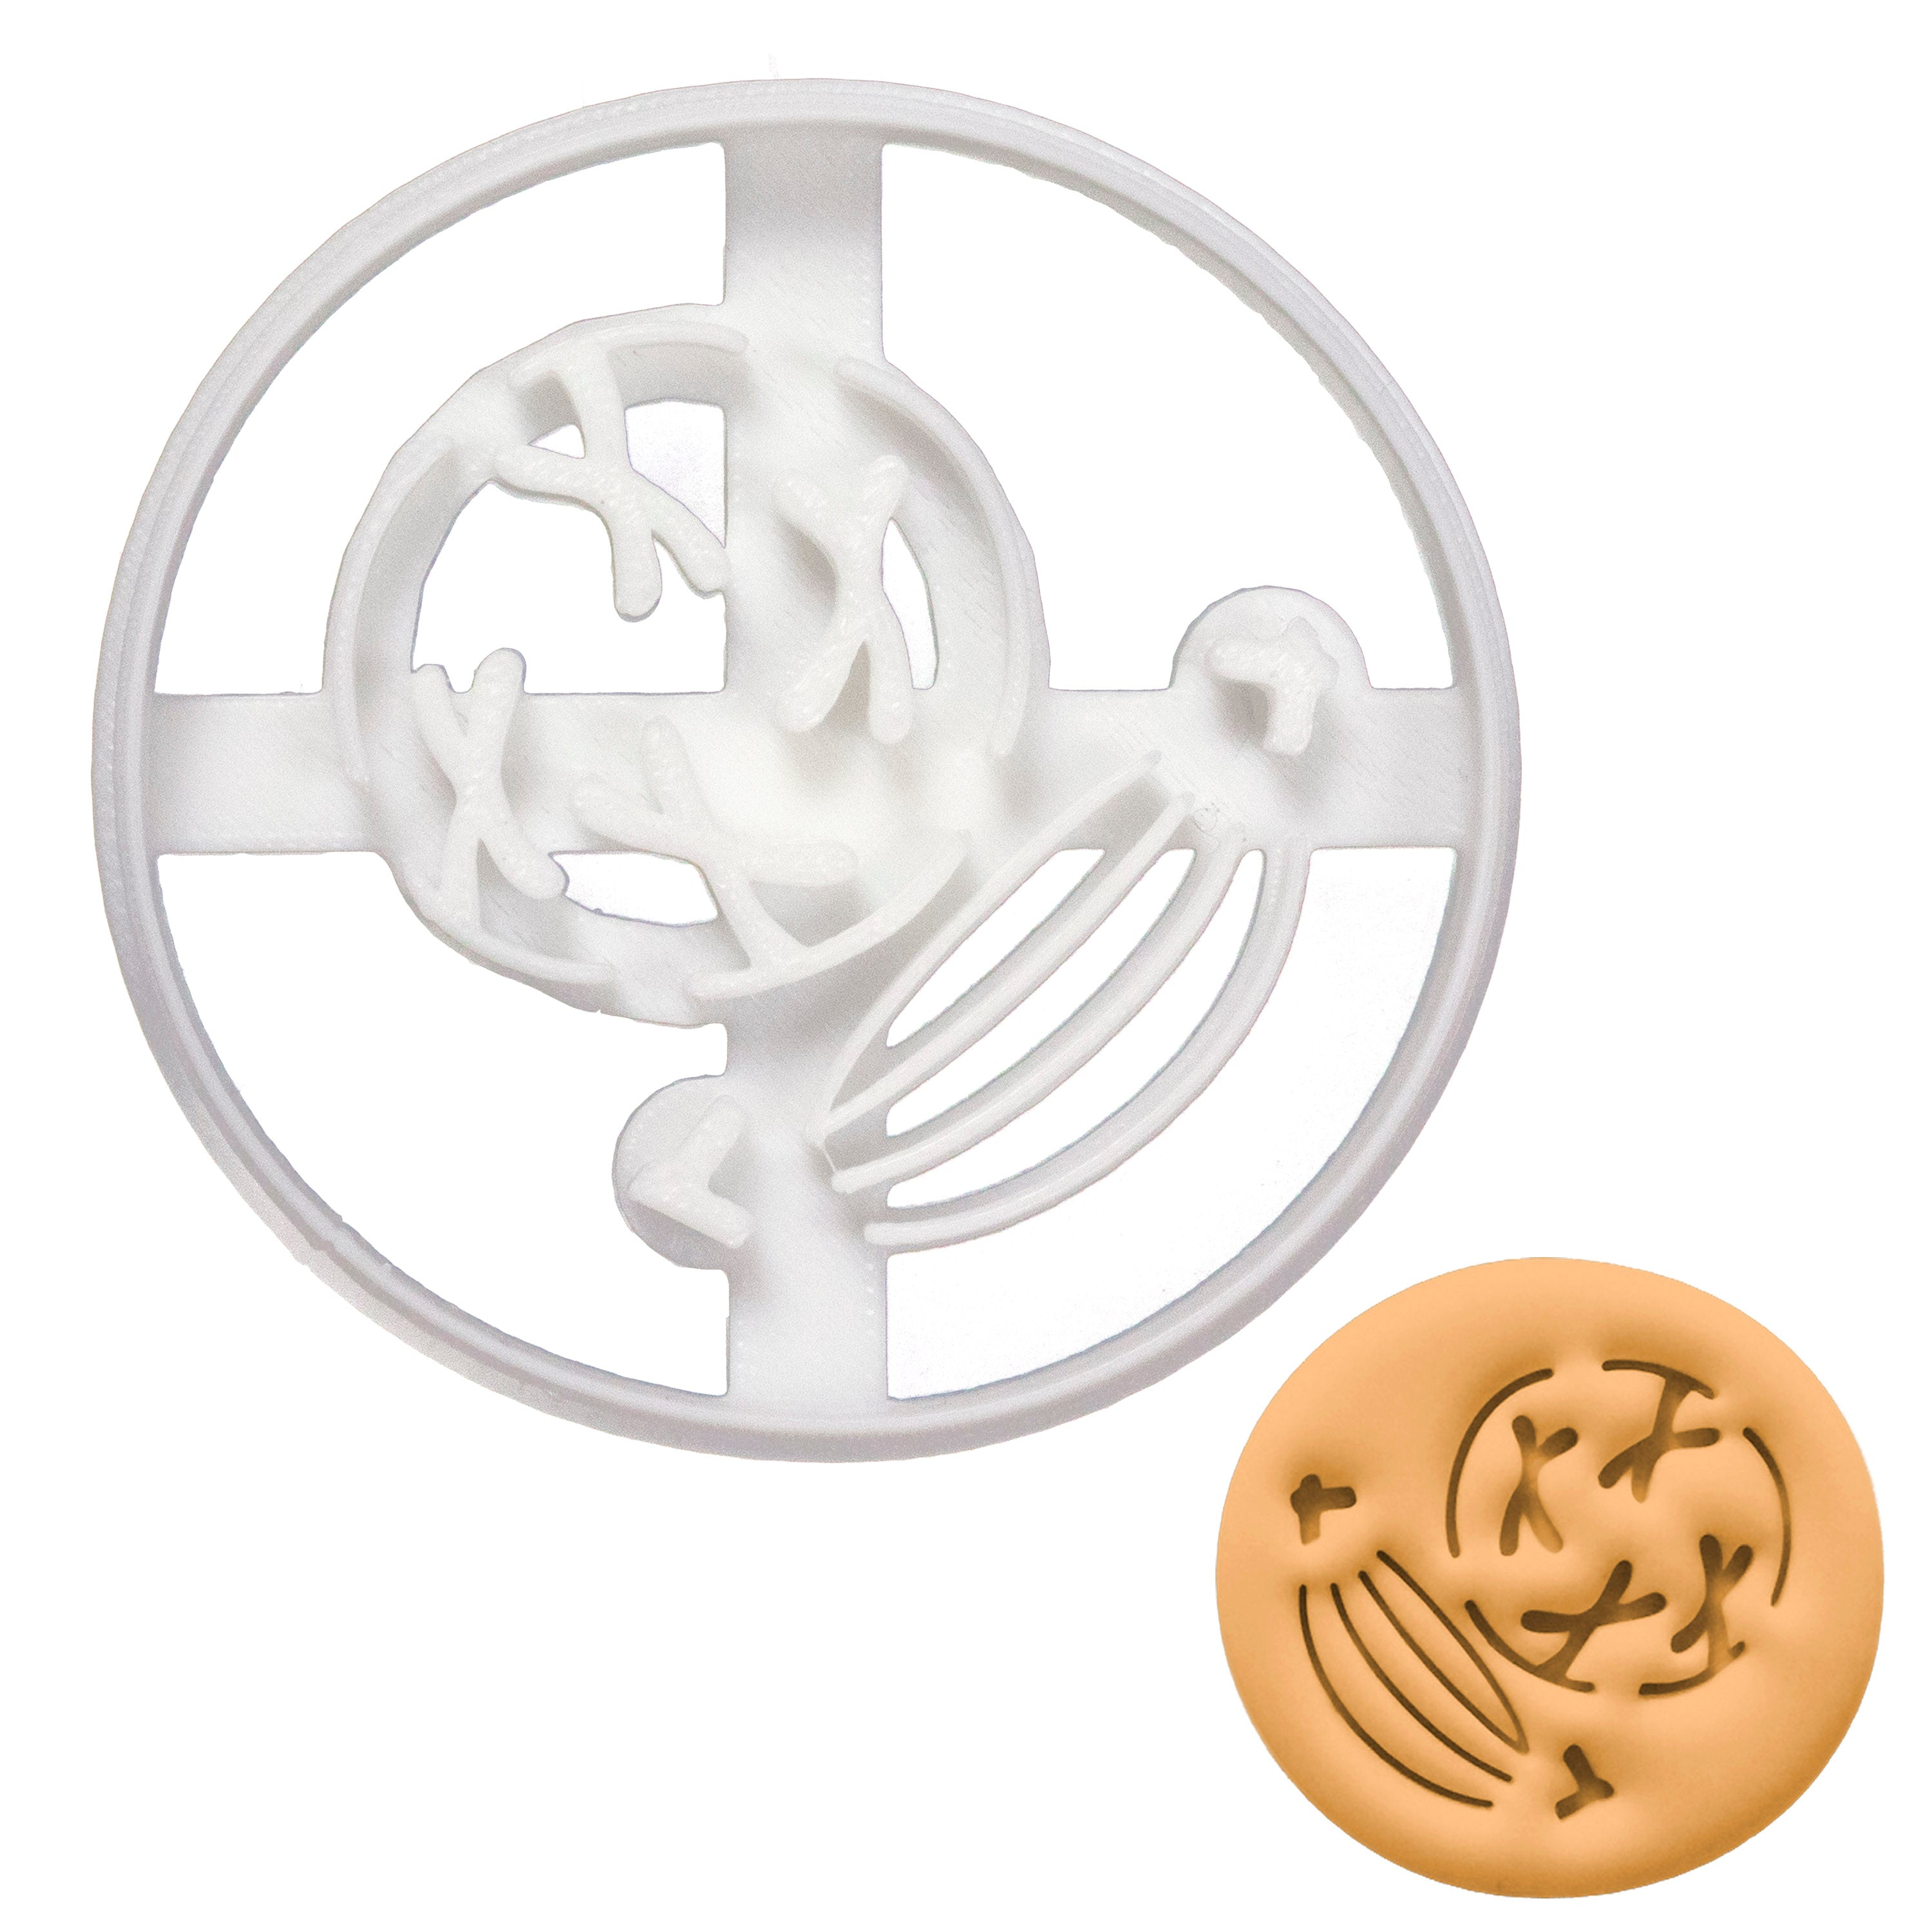 prophase mitosis cookie cutter